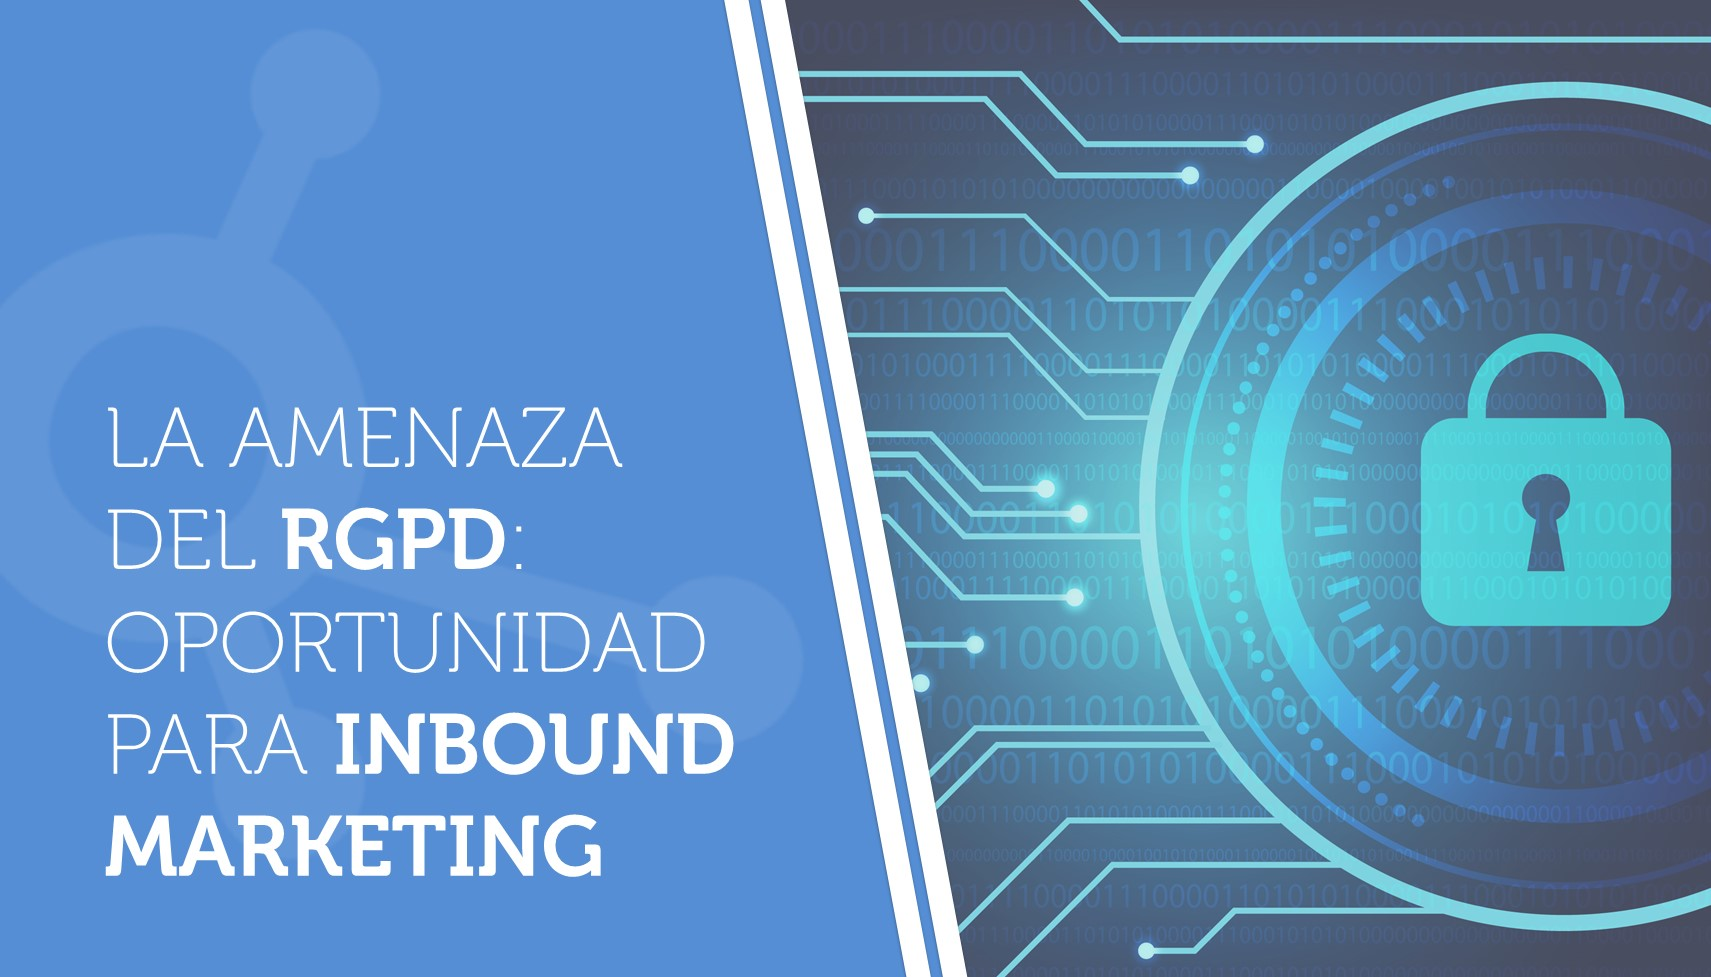 La amenaza del RGPD: oportunidad para inbound marketing